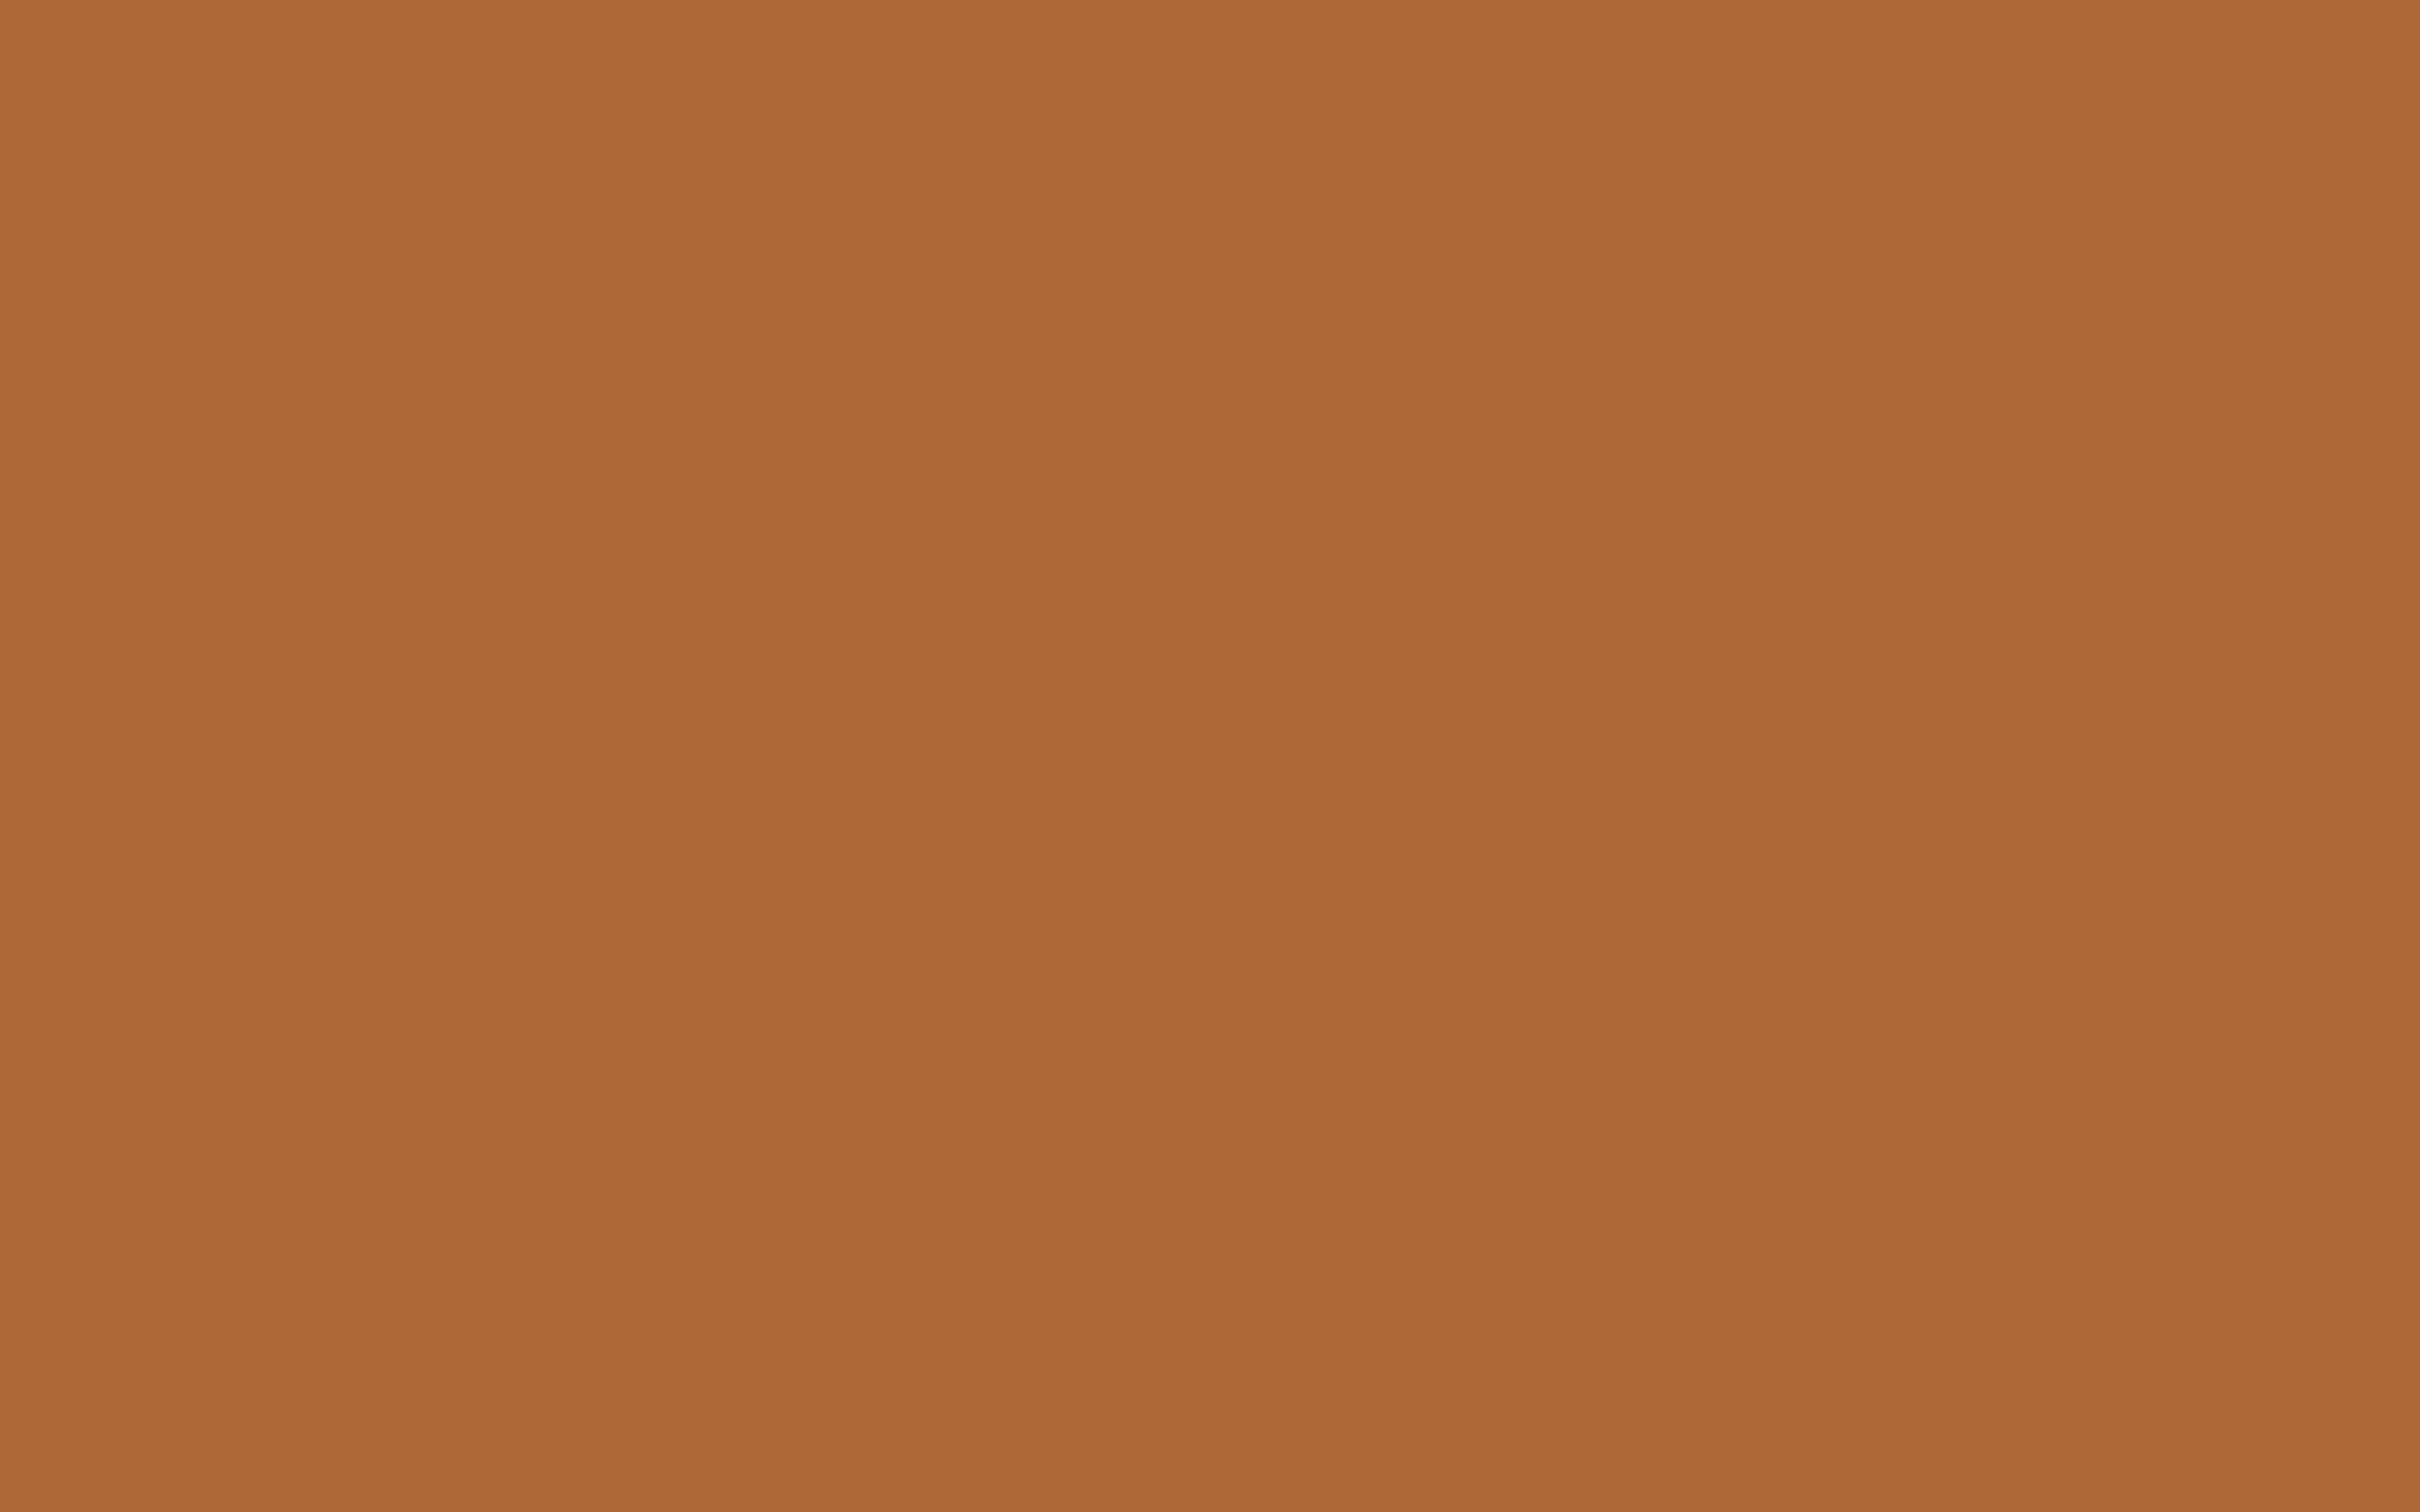 2560x1600 Windsor Tan Solid Color Background